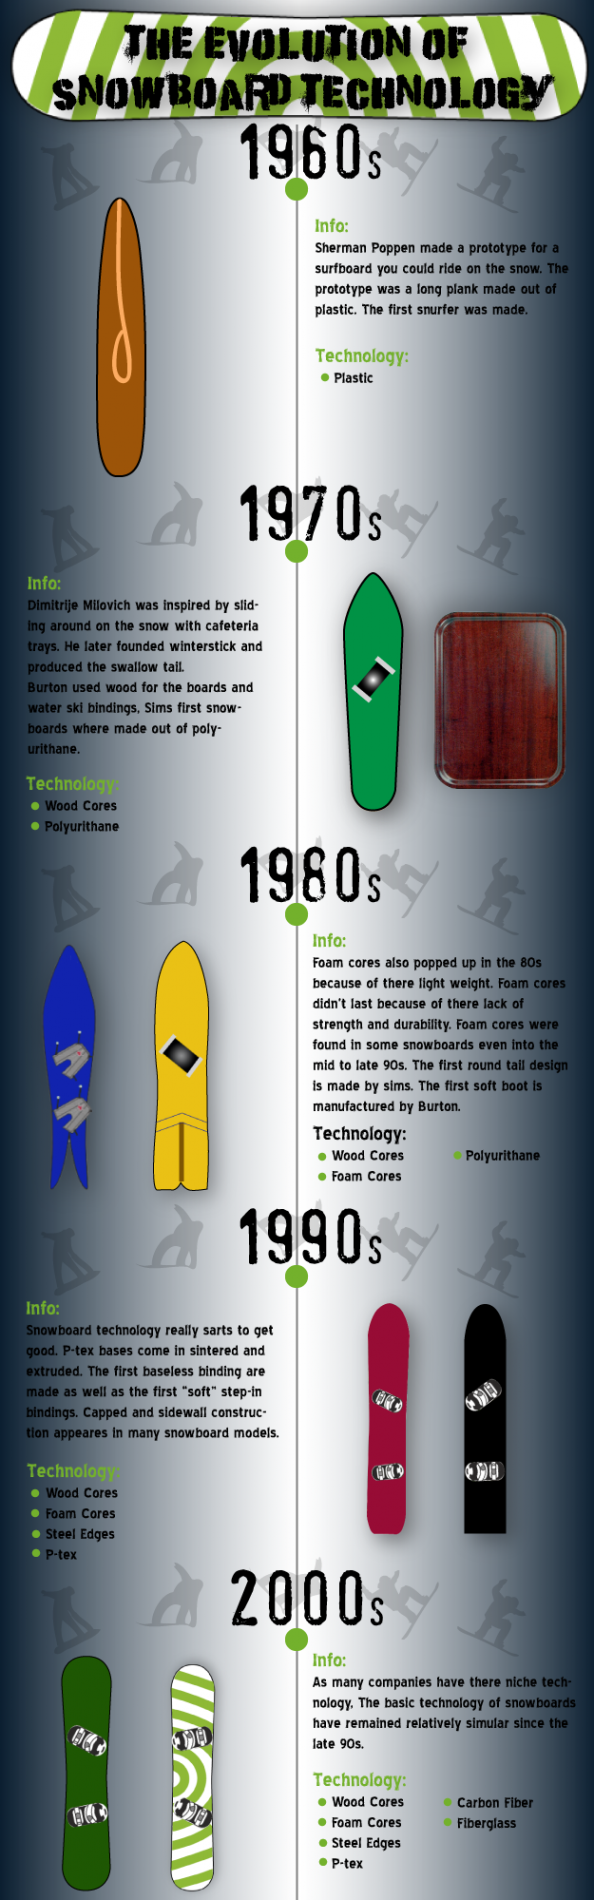 The Evolution of Snowboard Technology Infographic